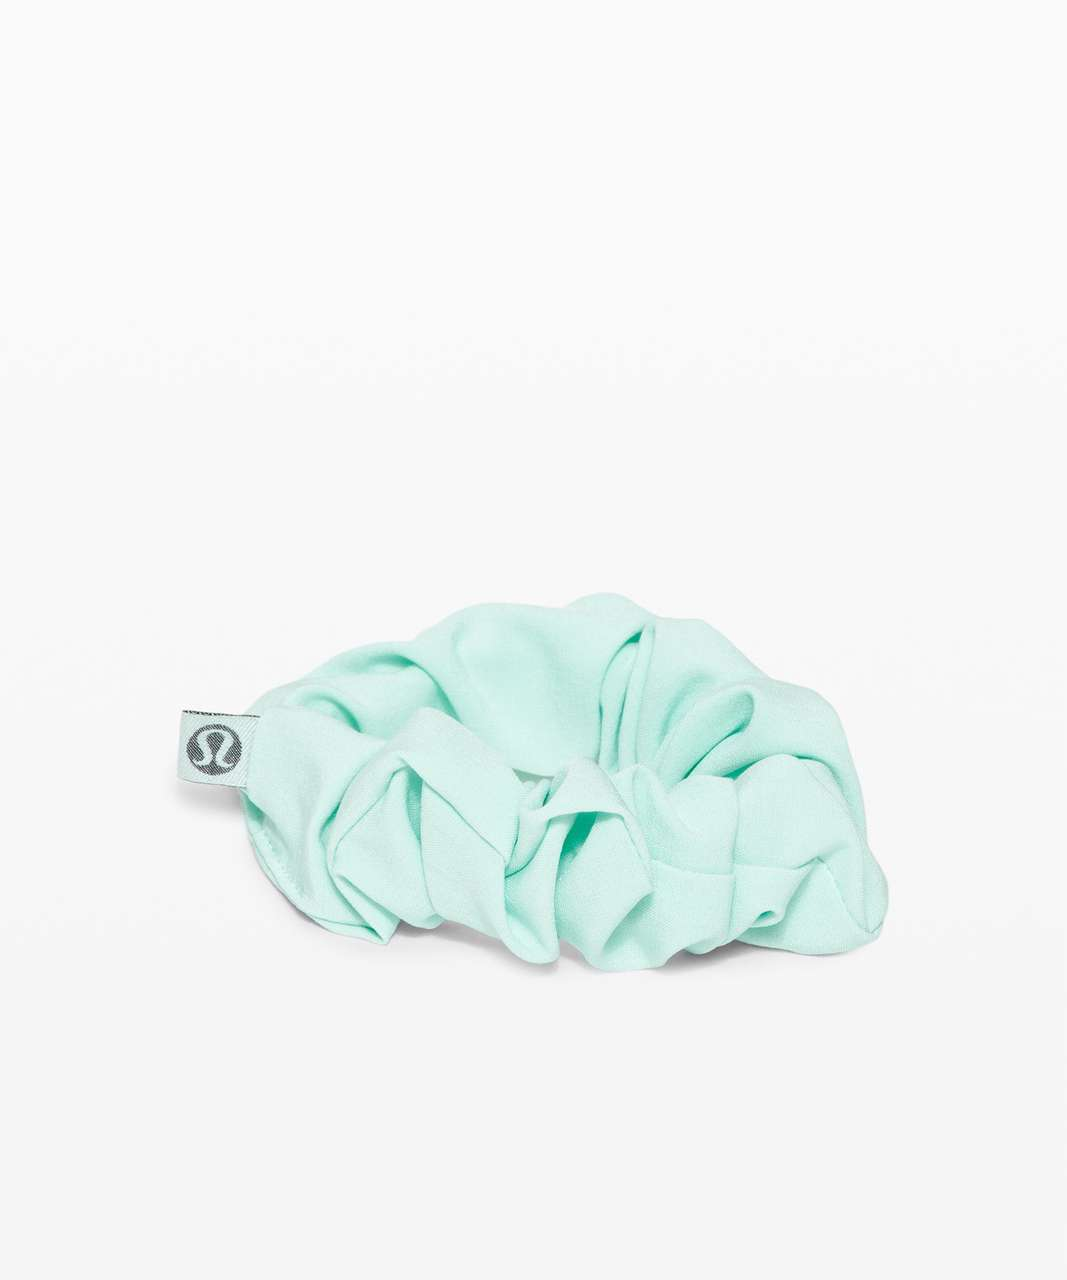 Lululemon Uplifting Scrunchie - Blue Glow